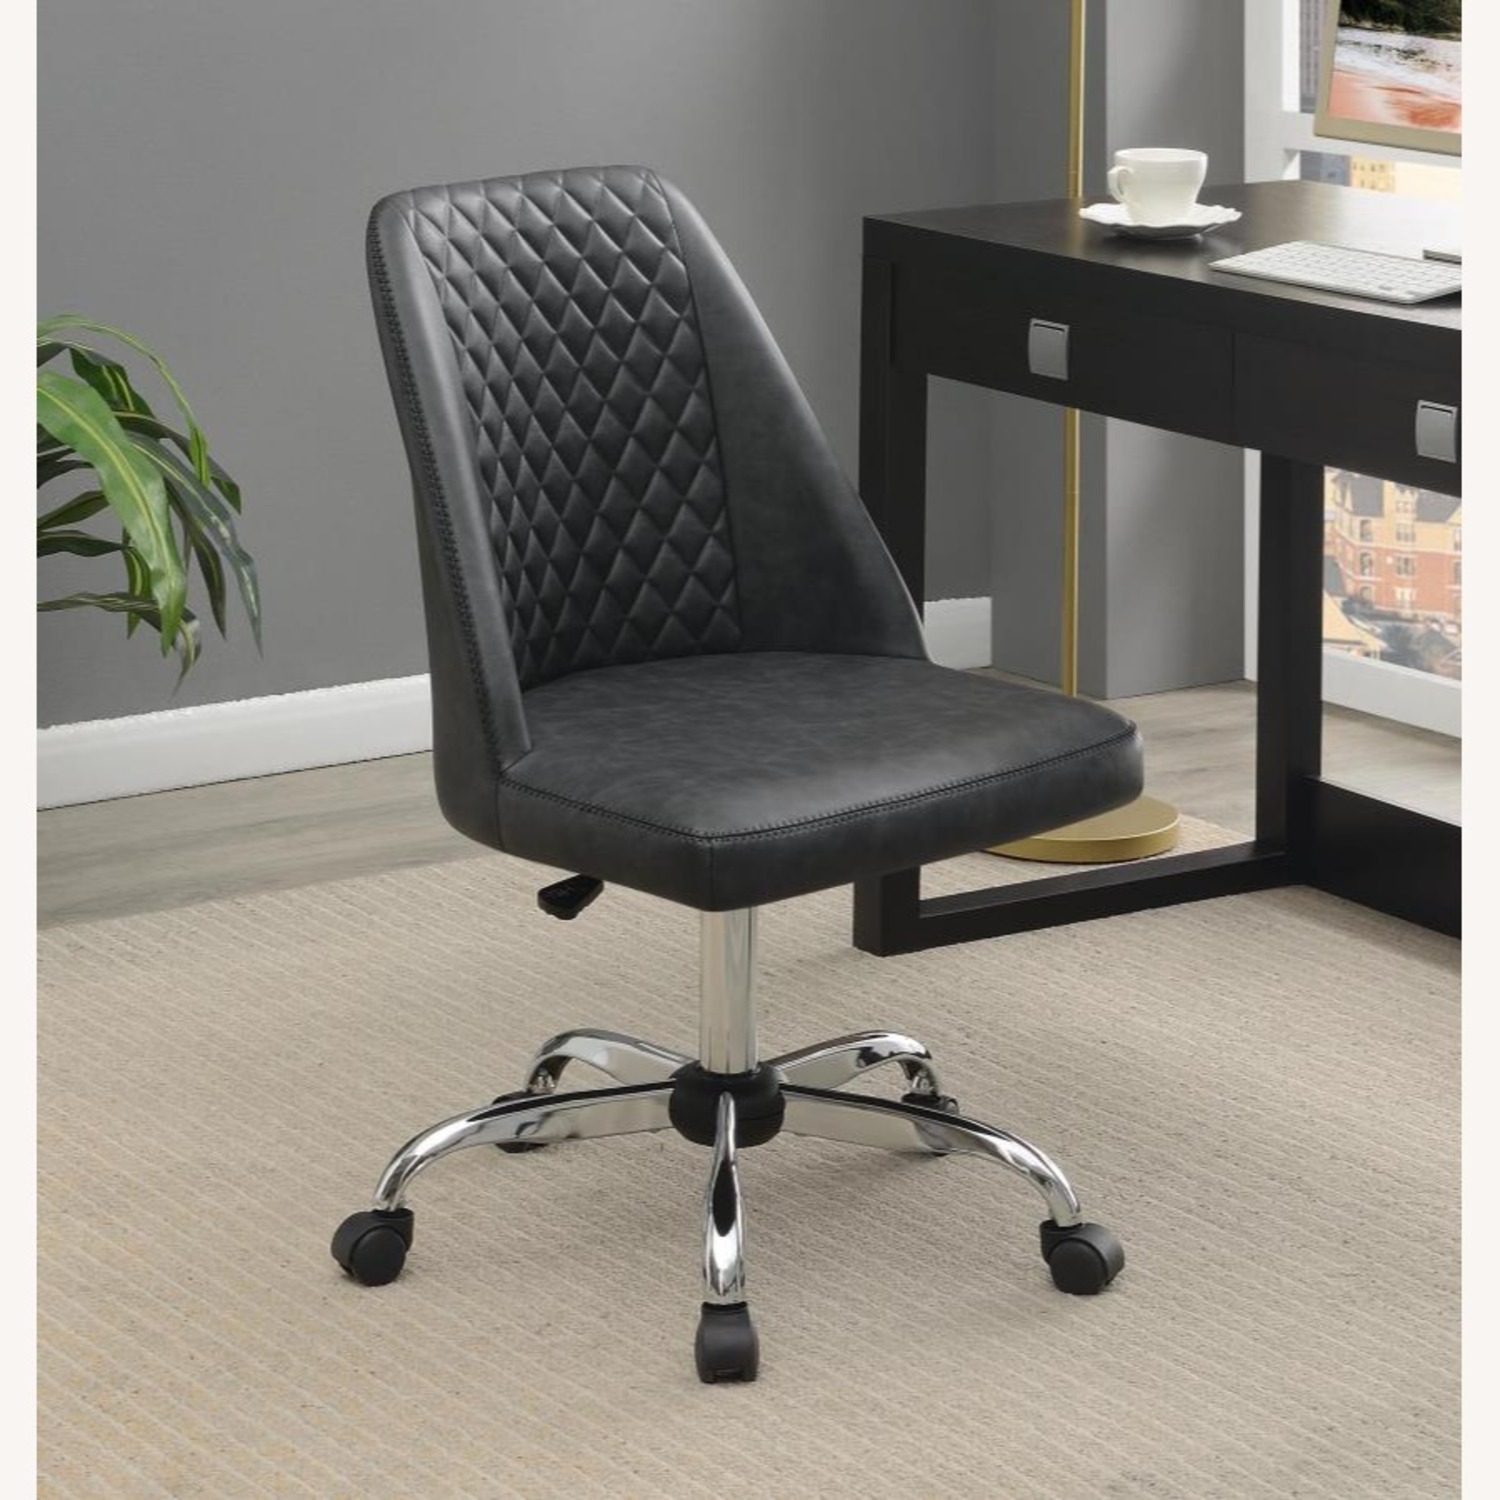 Office Chair In Tufted Grey Leatherette Upholstery - image-7